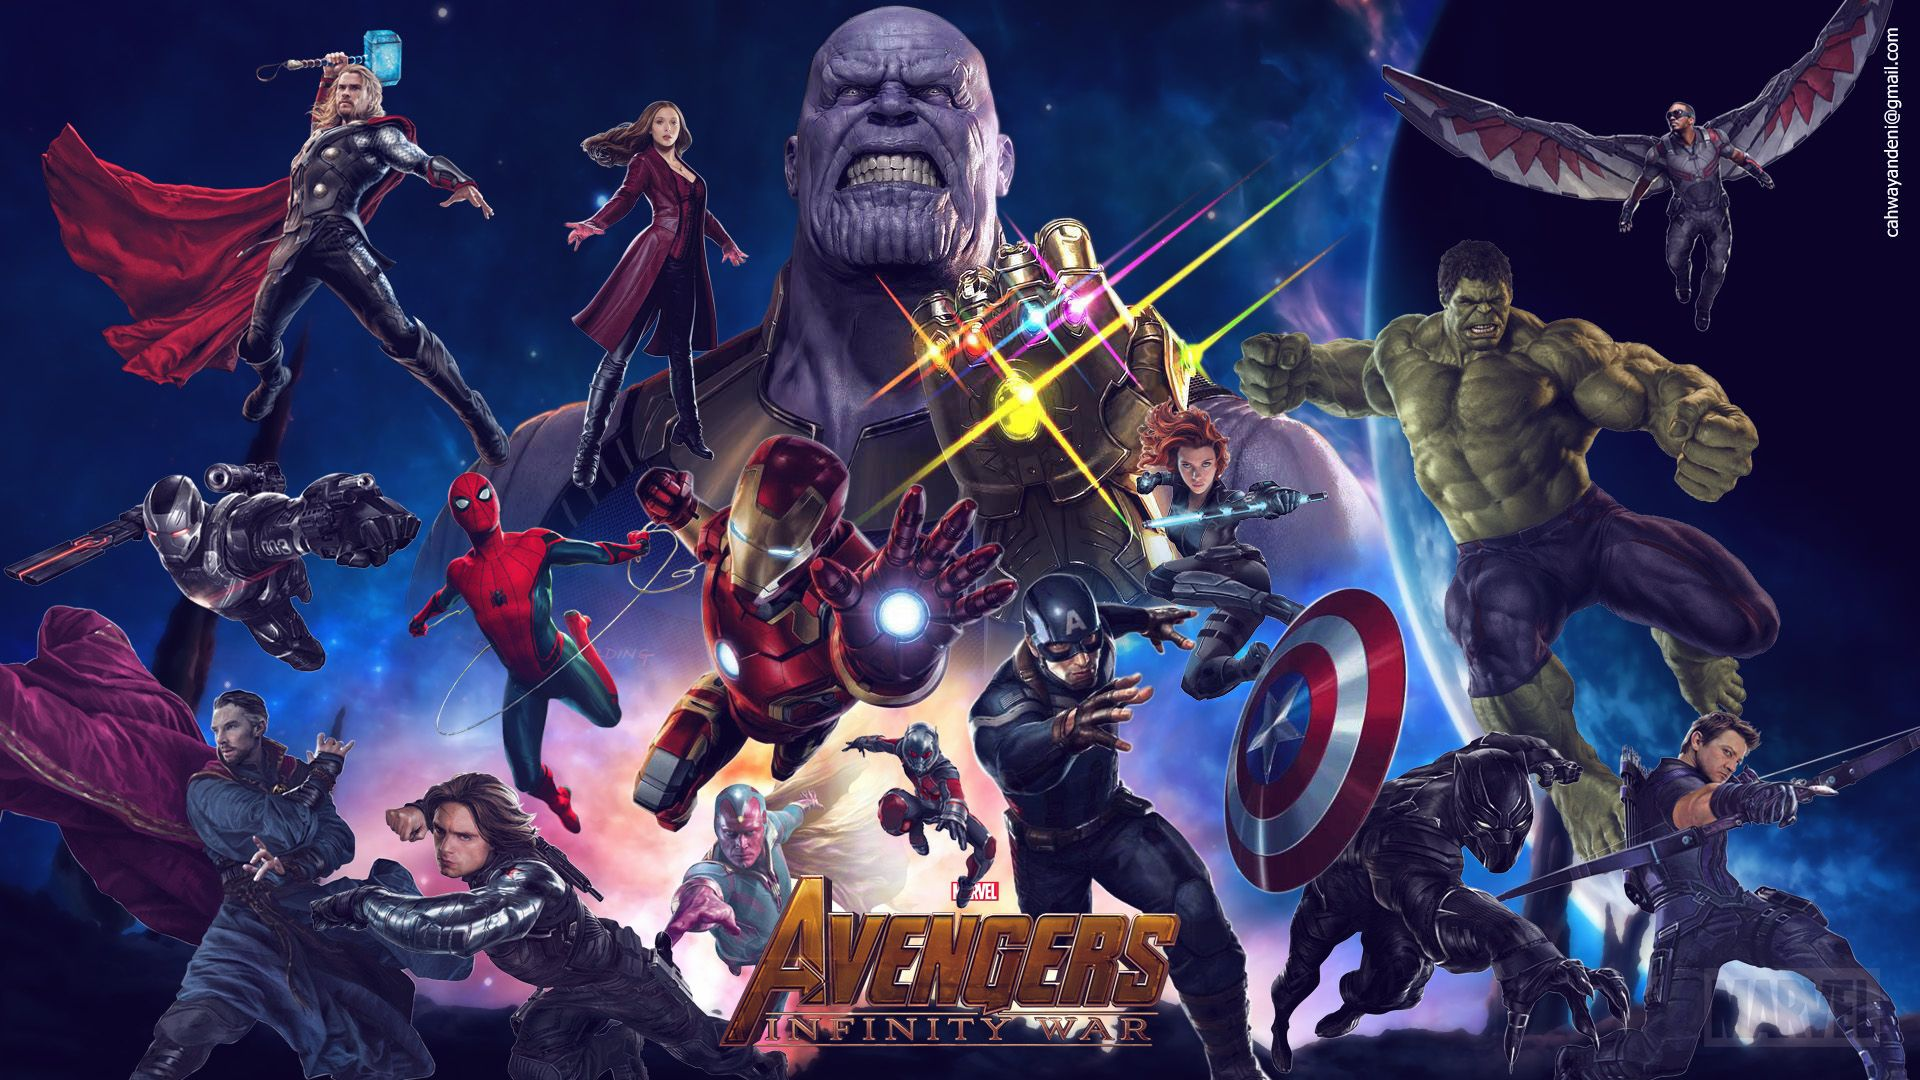 Avengers Infinity War 2018 Movie Laptop Full Hd 1080p